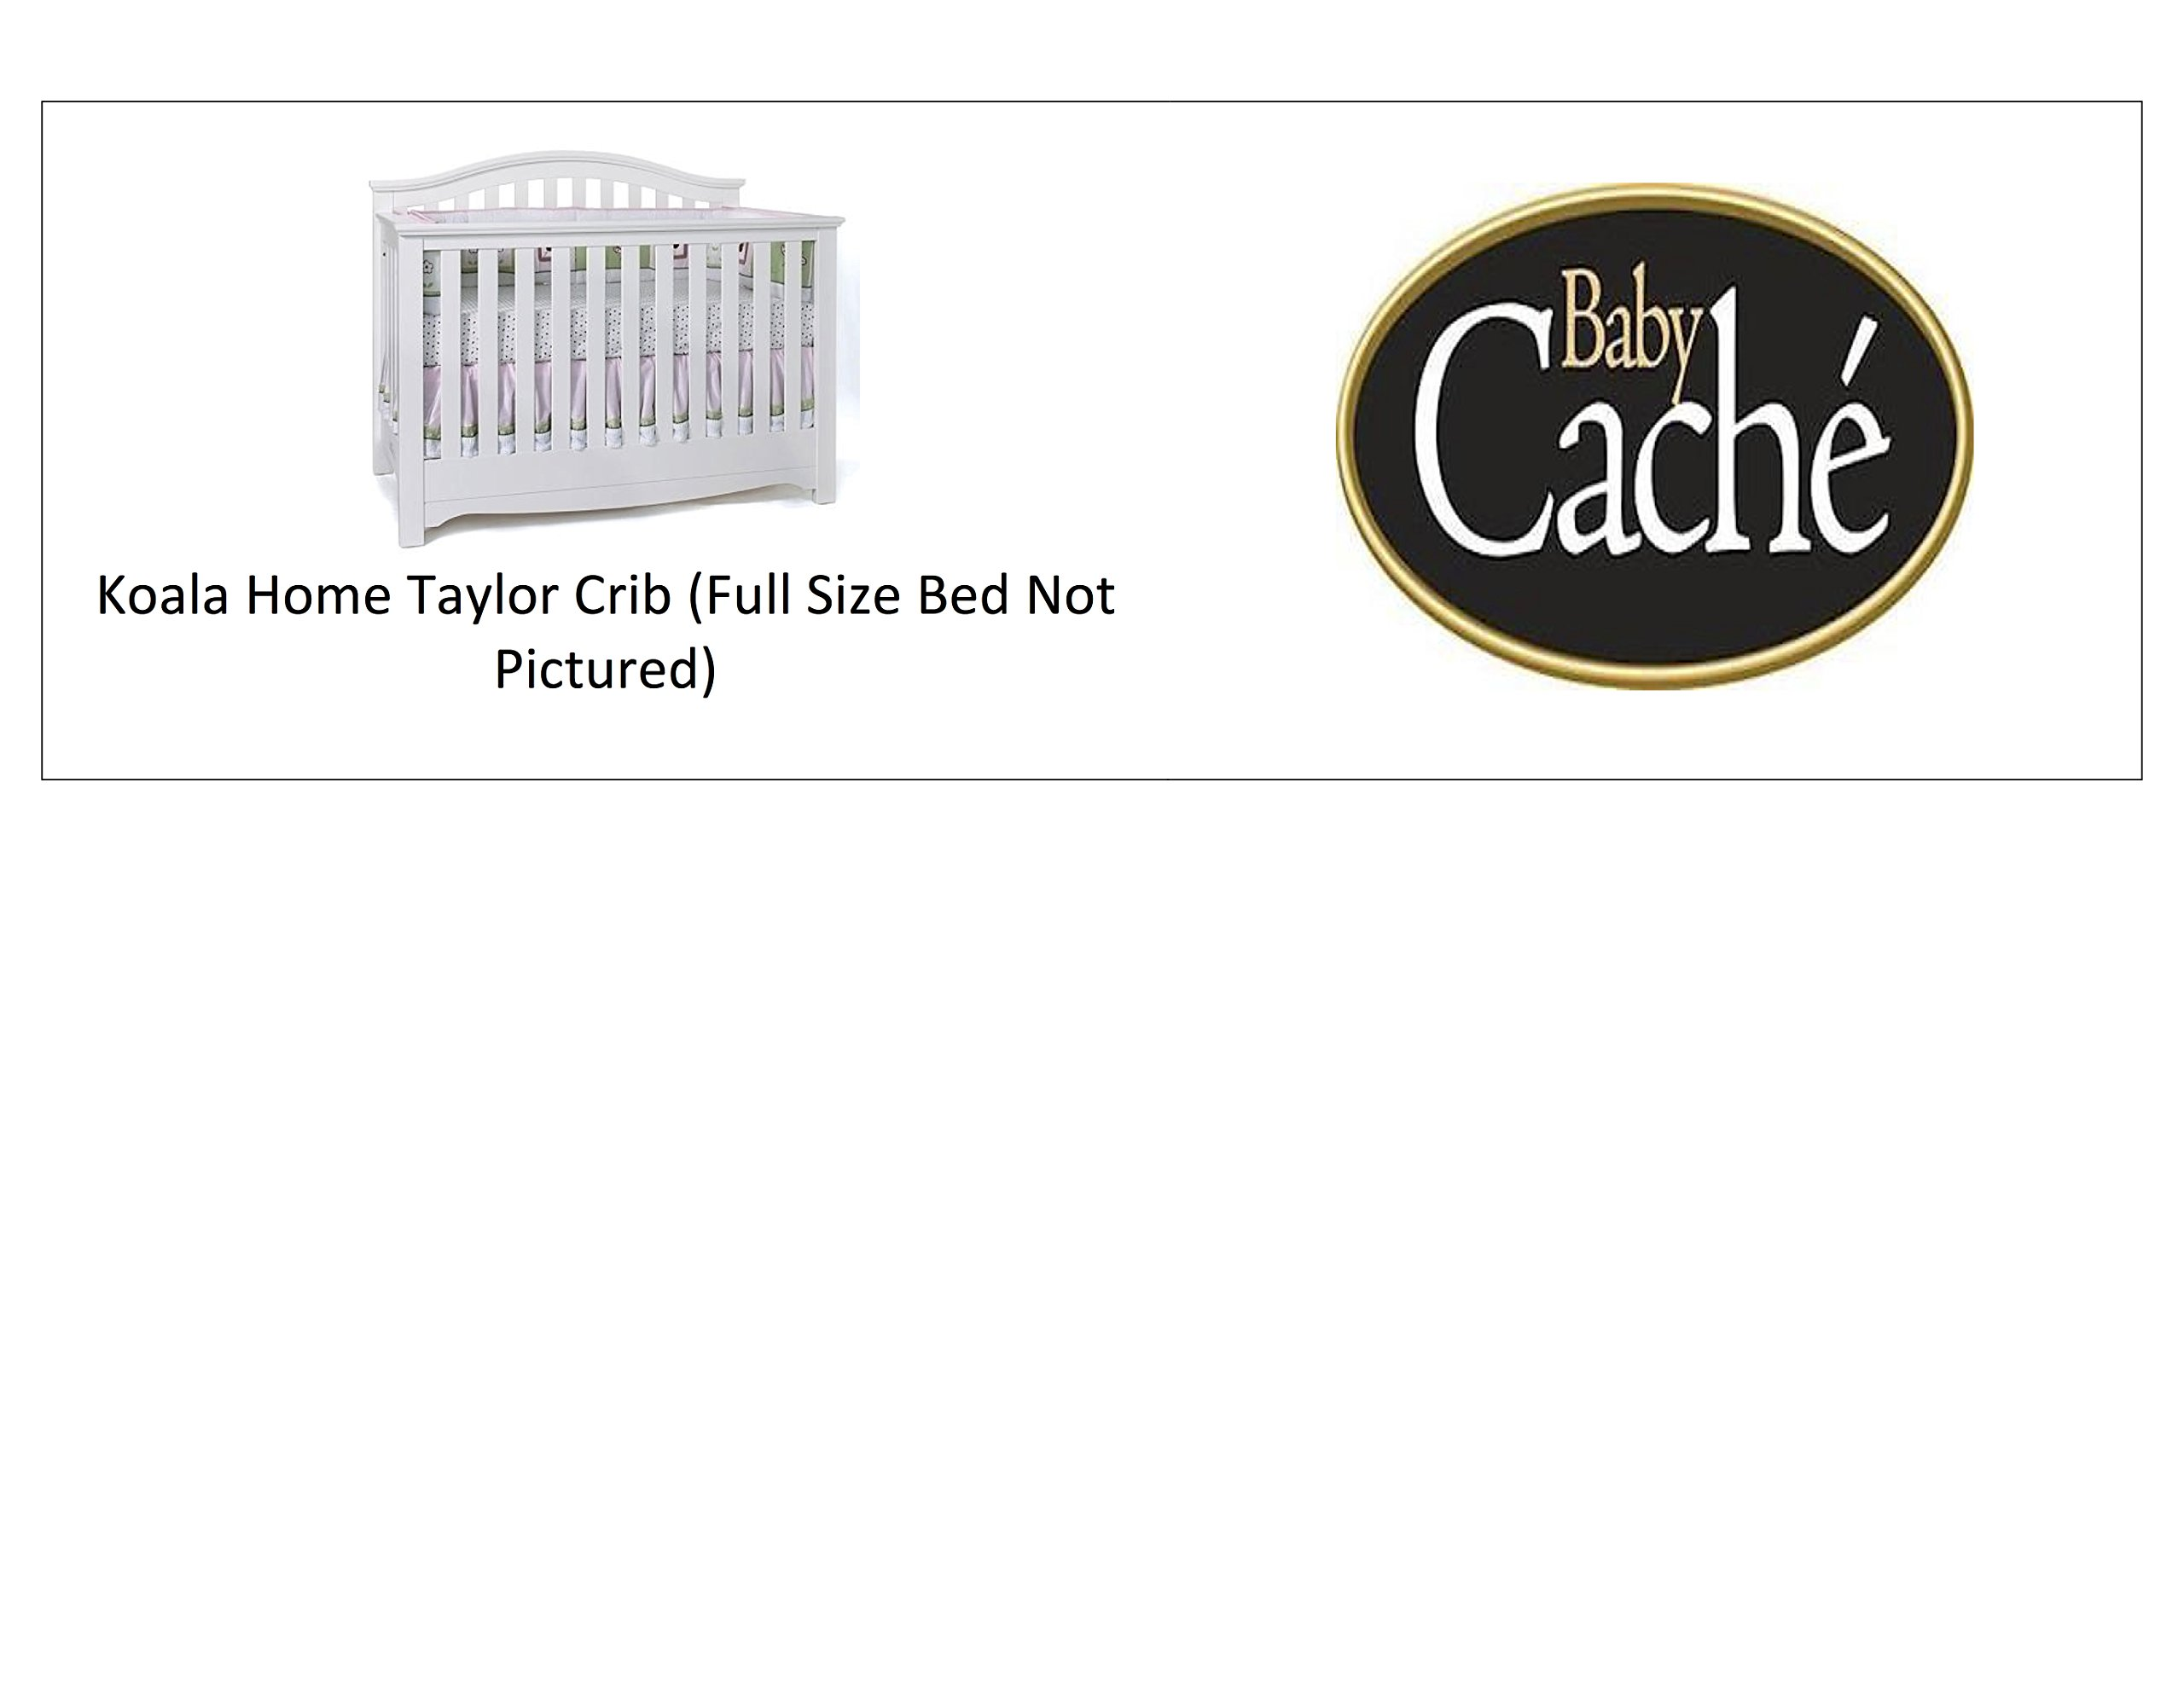 Full Size Conversion Kit Bed Rails for Baby Cache Cribs - White